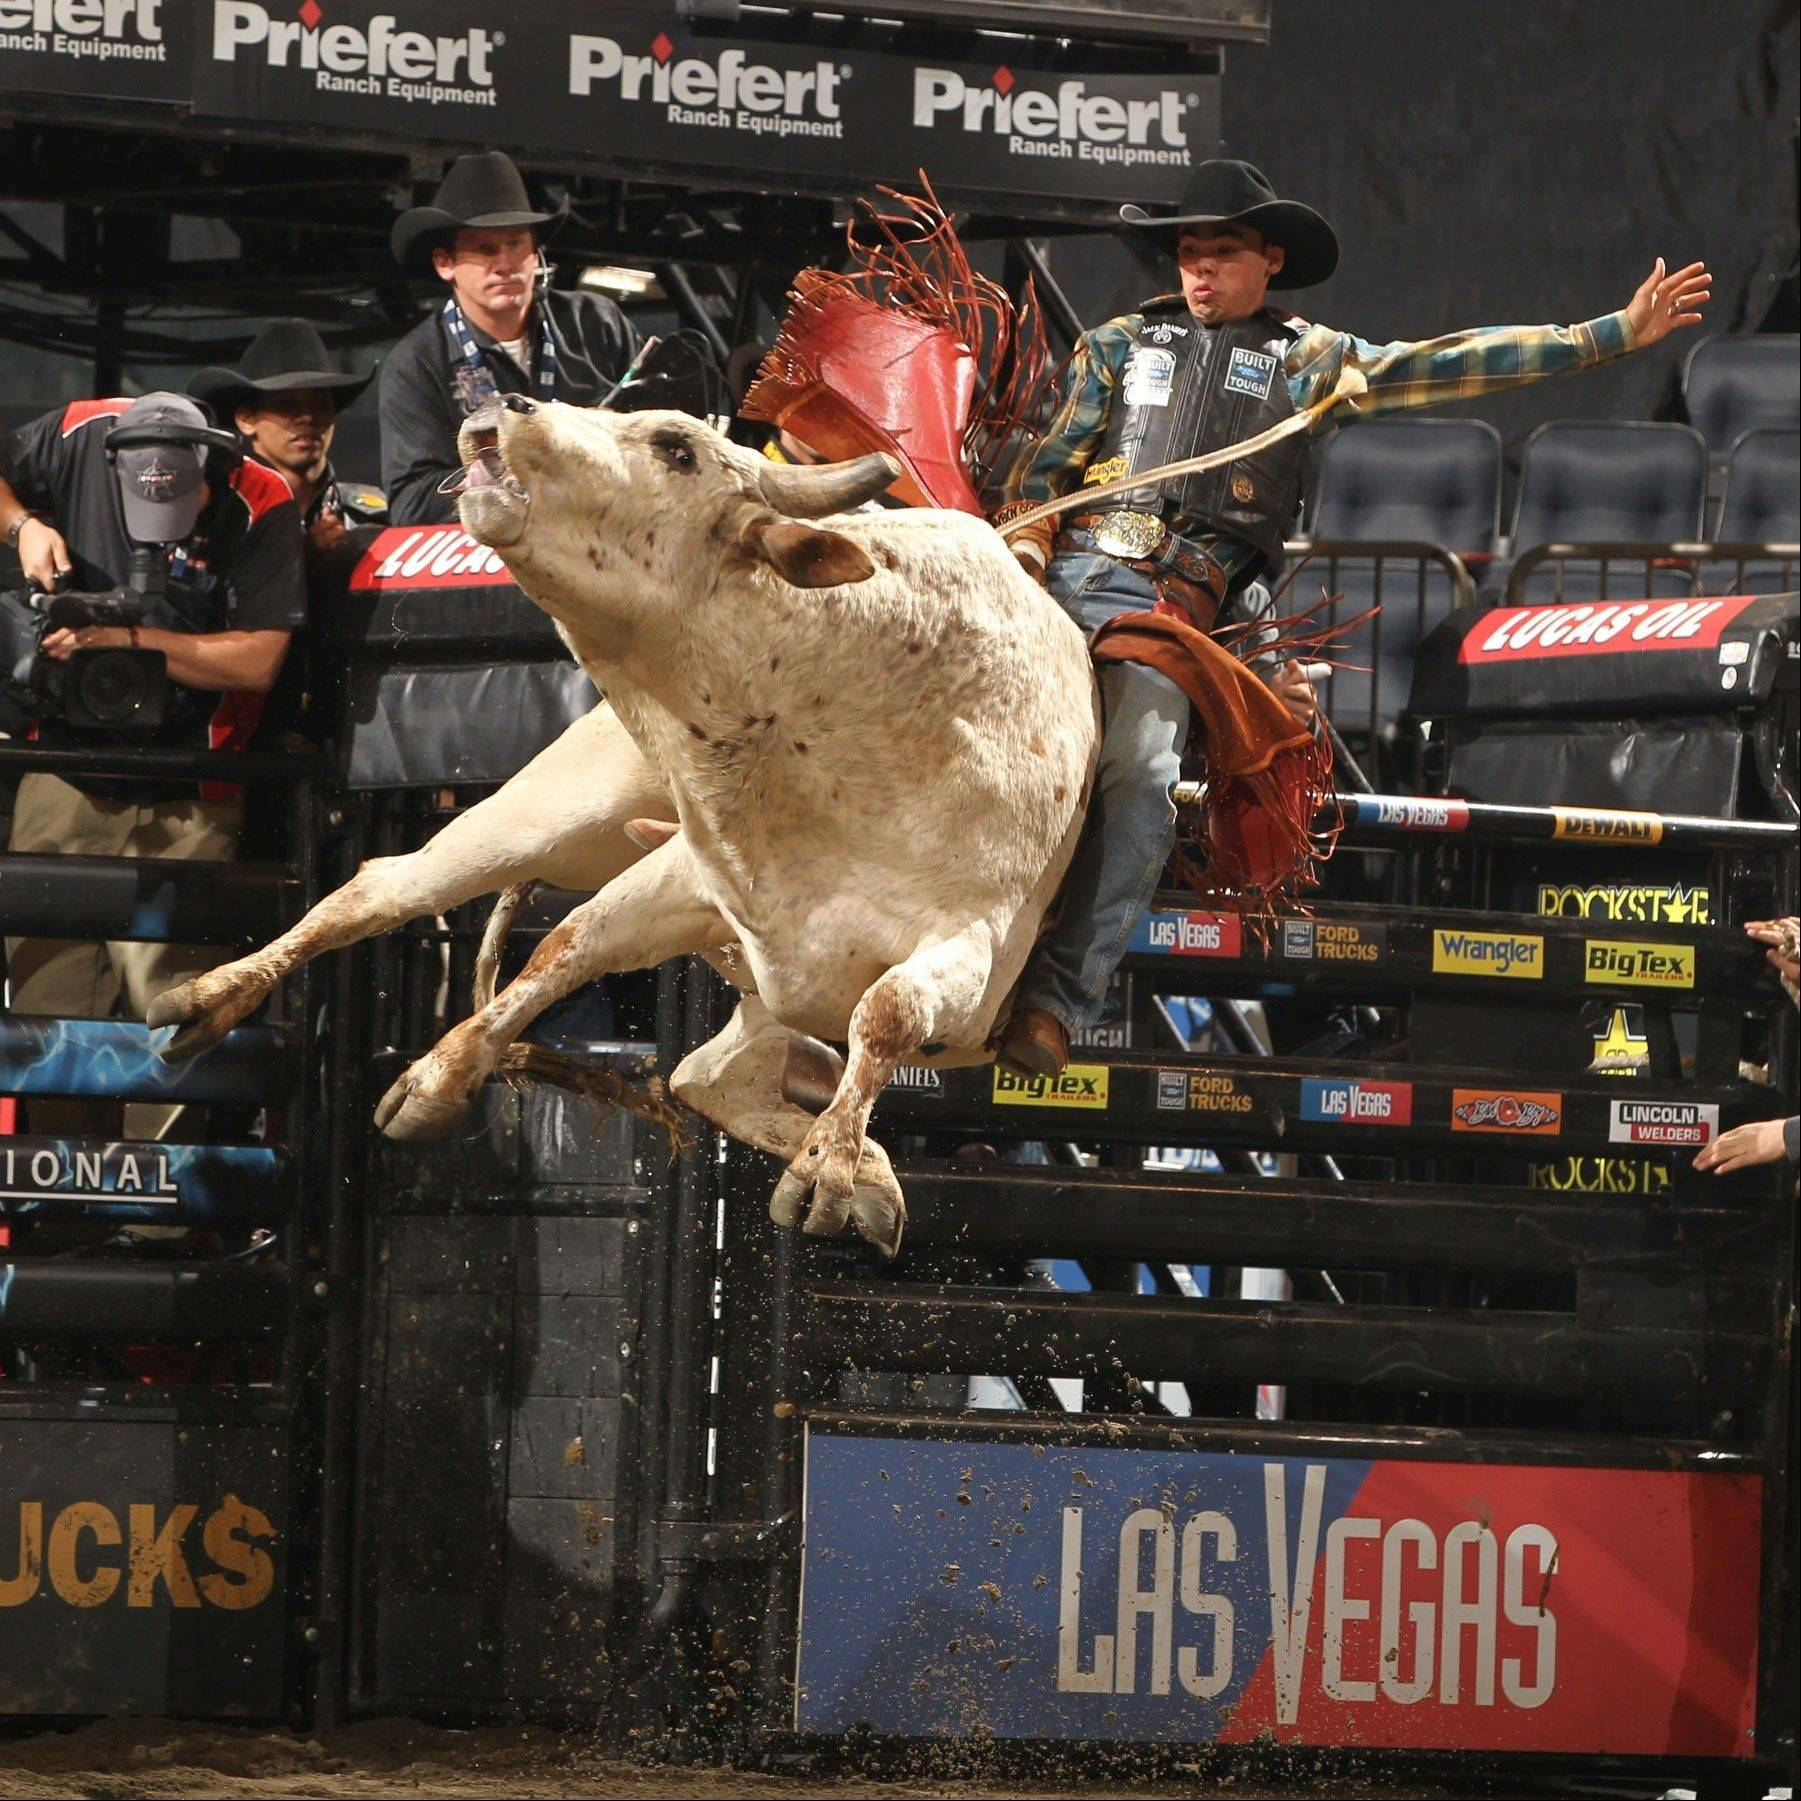 The 2013 Professional Bull Riders (PBR) Built Ford Tough Series will make a stop at the Allstate Arena in Rosemont on Saturday and Sunday, Jan. 12-13.